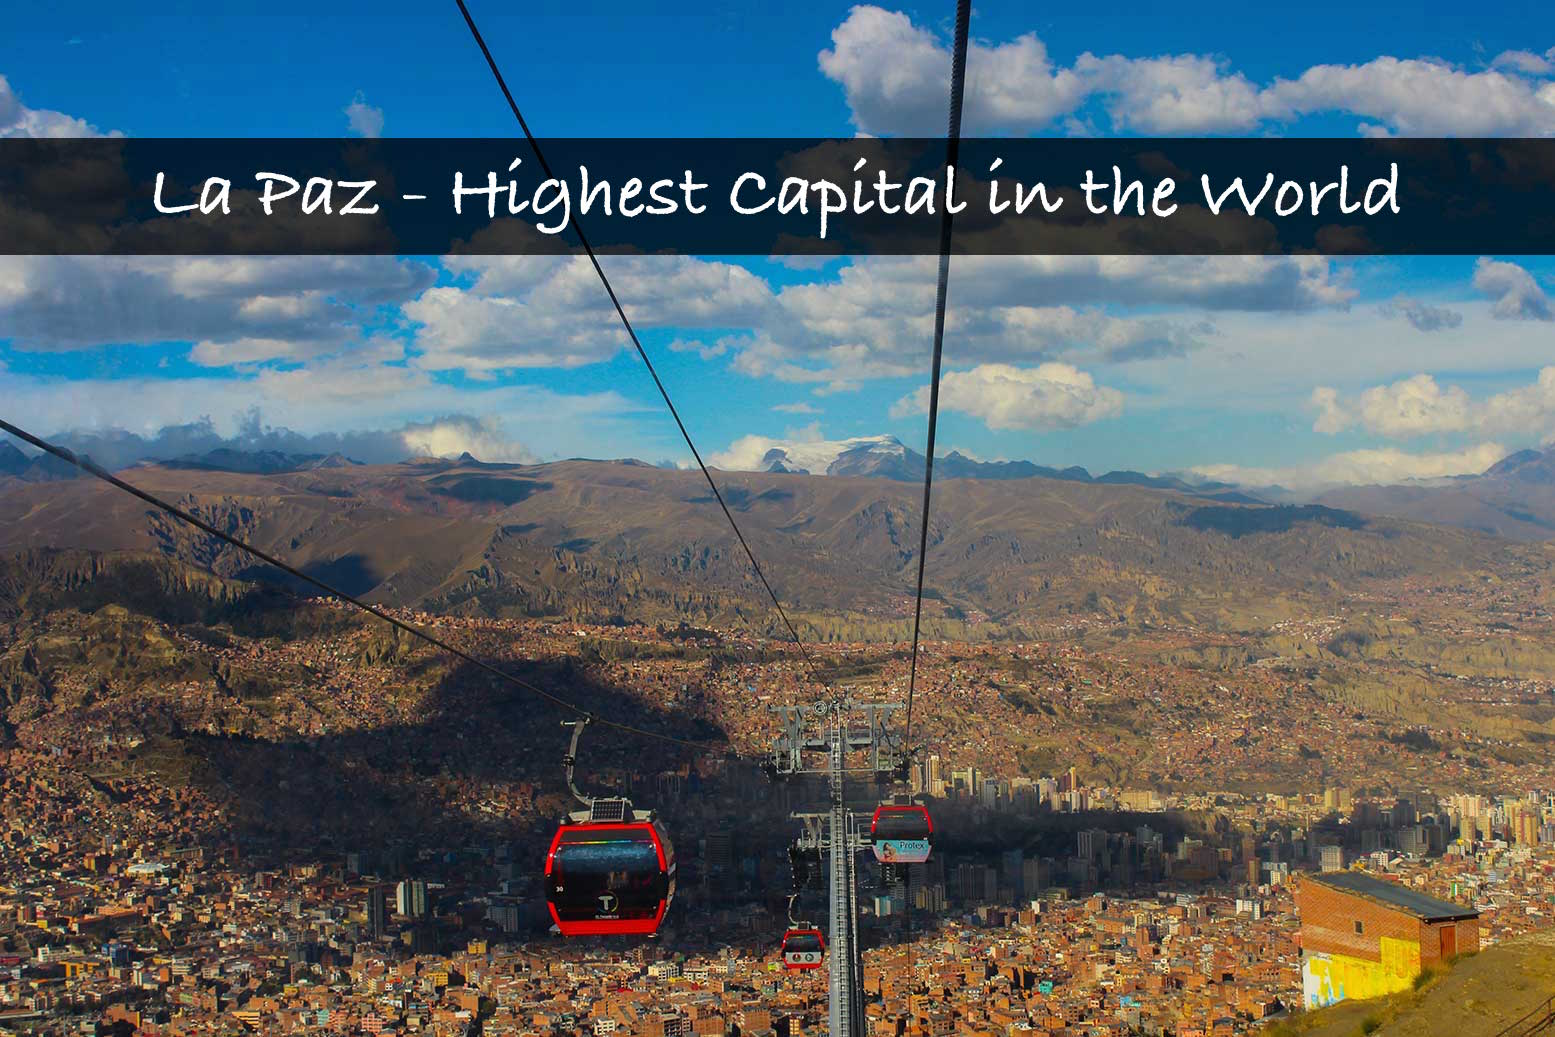 Highlights of the highest Capital in the World